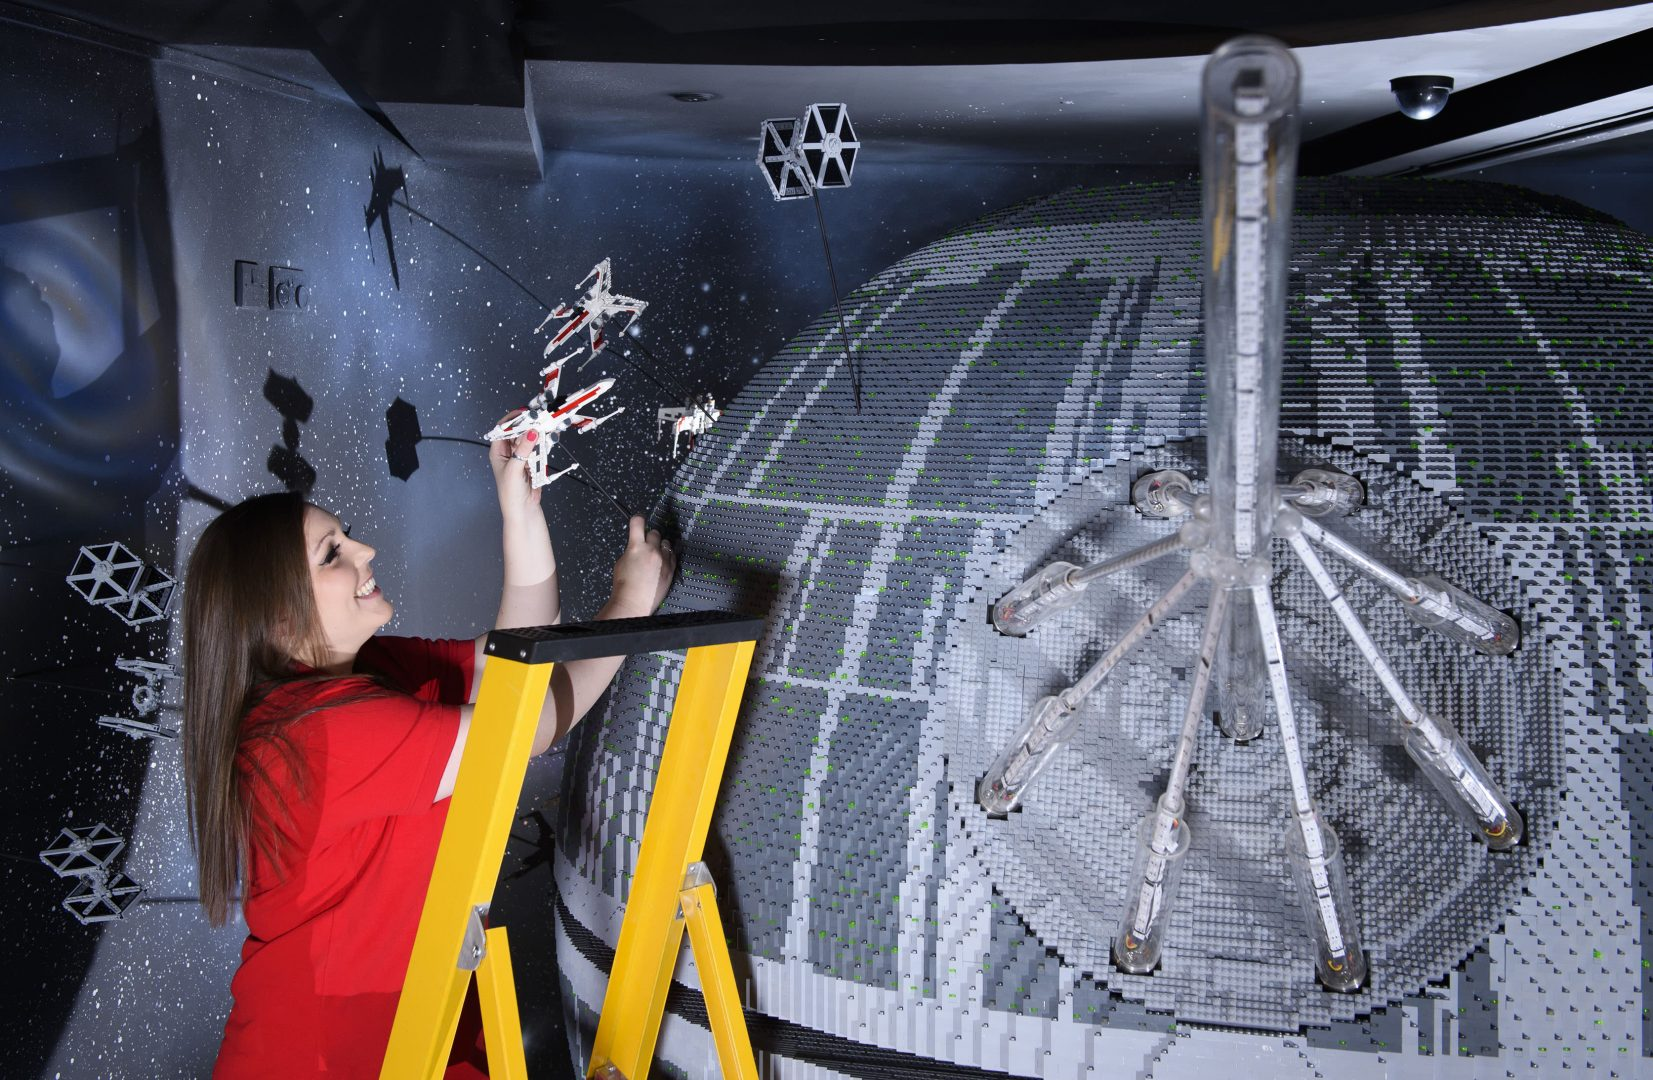 ONE OF THE WORLD'S BIGGEST EVER LEGO® STAR WARS™ MODELS INSTALLED AT THE LEGOLAND® WINDSOR RESORT.   LAST PIECES PUT IN PLACE ON 500,000 LEGO® BRICK DEATH STAR LEGOLAND® Model Maker, Phoebe Rumbol, puts the finishing touches to one of the Rebel Alliance ships featured in a new finale scene to the Resort's LEGO® Star Wars™ Miniland Model Display.  Featuring one of the most impressive and biggest LEGO® Star Wars™ models ever created - a 500,000 brick LEGO® Star Wars™ recreation of The Death Star.   The models were installed in a mammoth operation that took three days as the massive new 2.4 metre wide, 3 metre high creation was carefully hoisted into position and the final bricks and scenes were put in place. The hefty 860kg perfectly spherical model took 15 Model Makers three months to build and guests can trigger special effects and bring the scene to life when it opens at the Resort on 11 March. TM & © Lucasfilm Ltd. All rights reserved